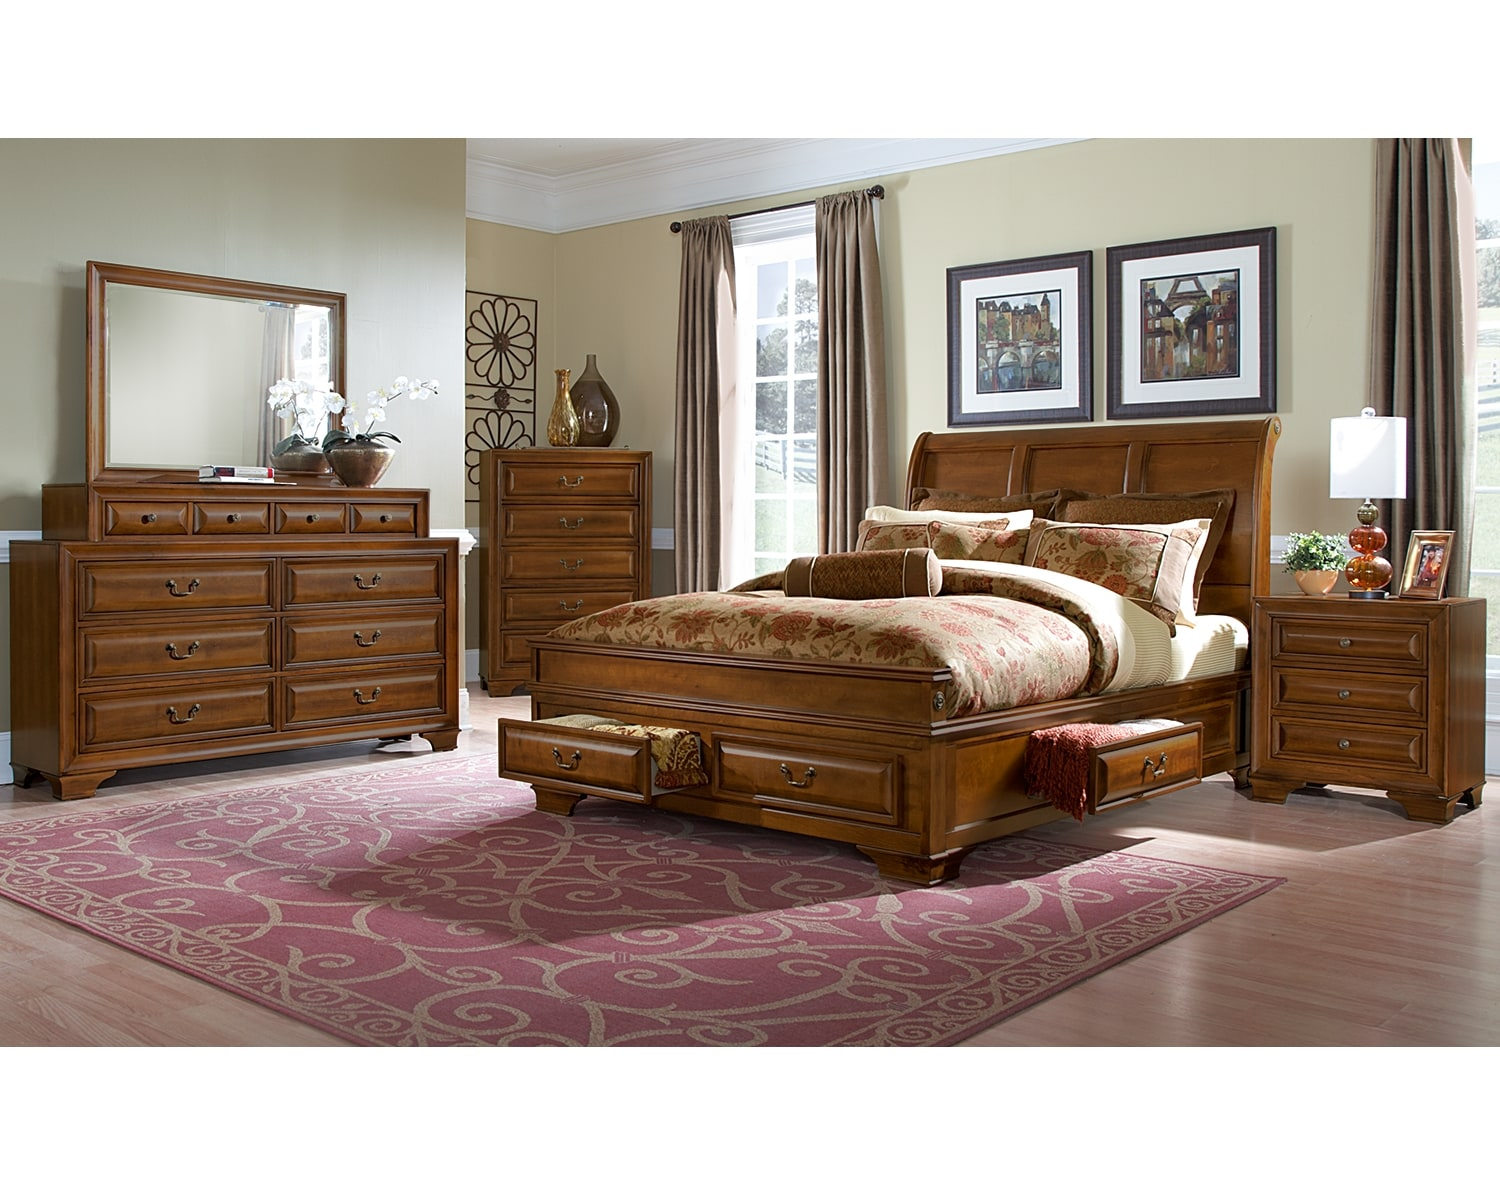 Bedroom Furniture - The Hereford Collection - Queen Storage Bed